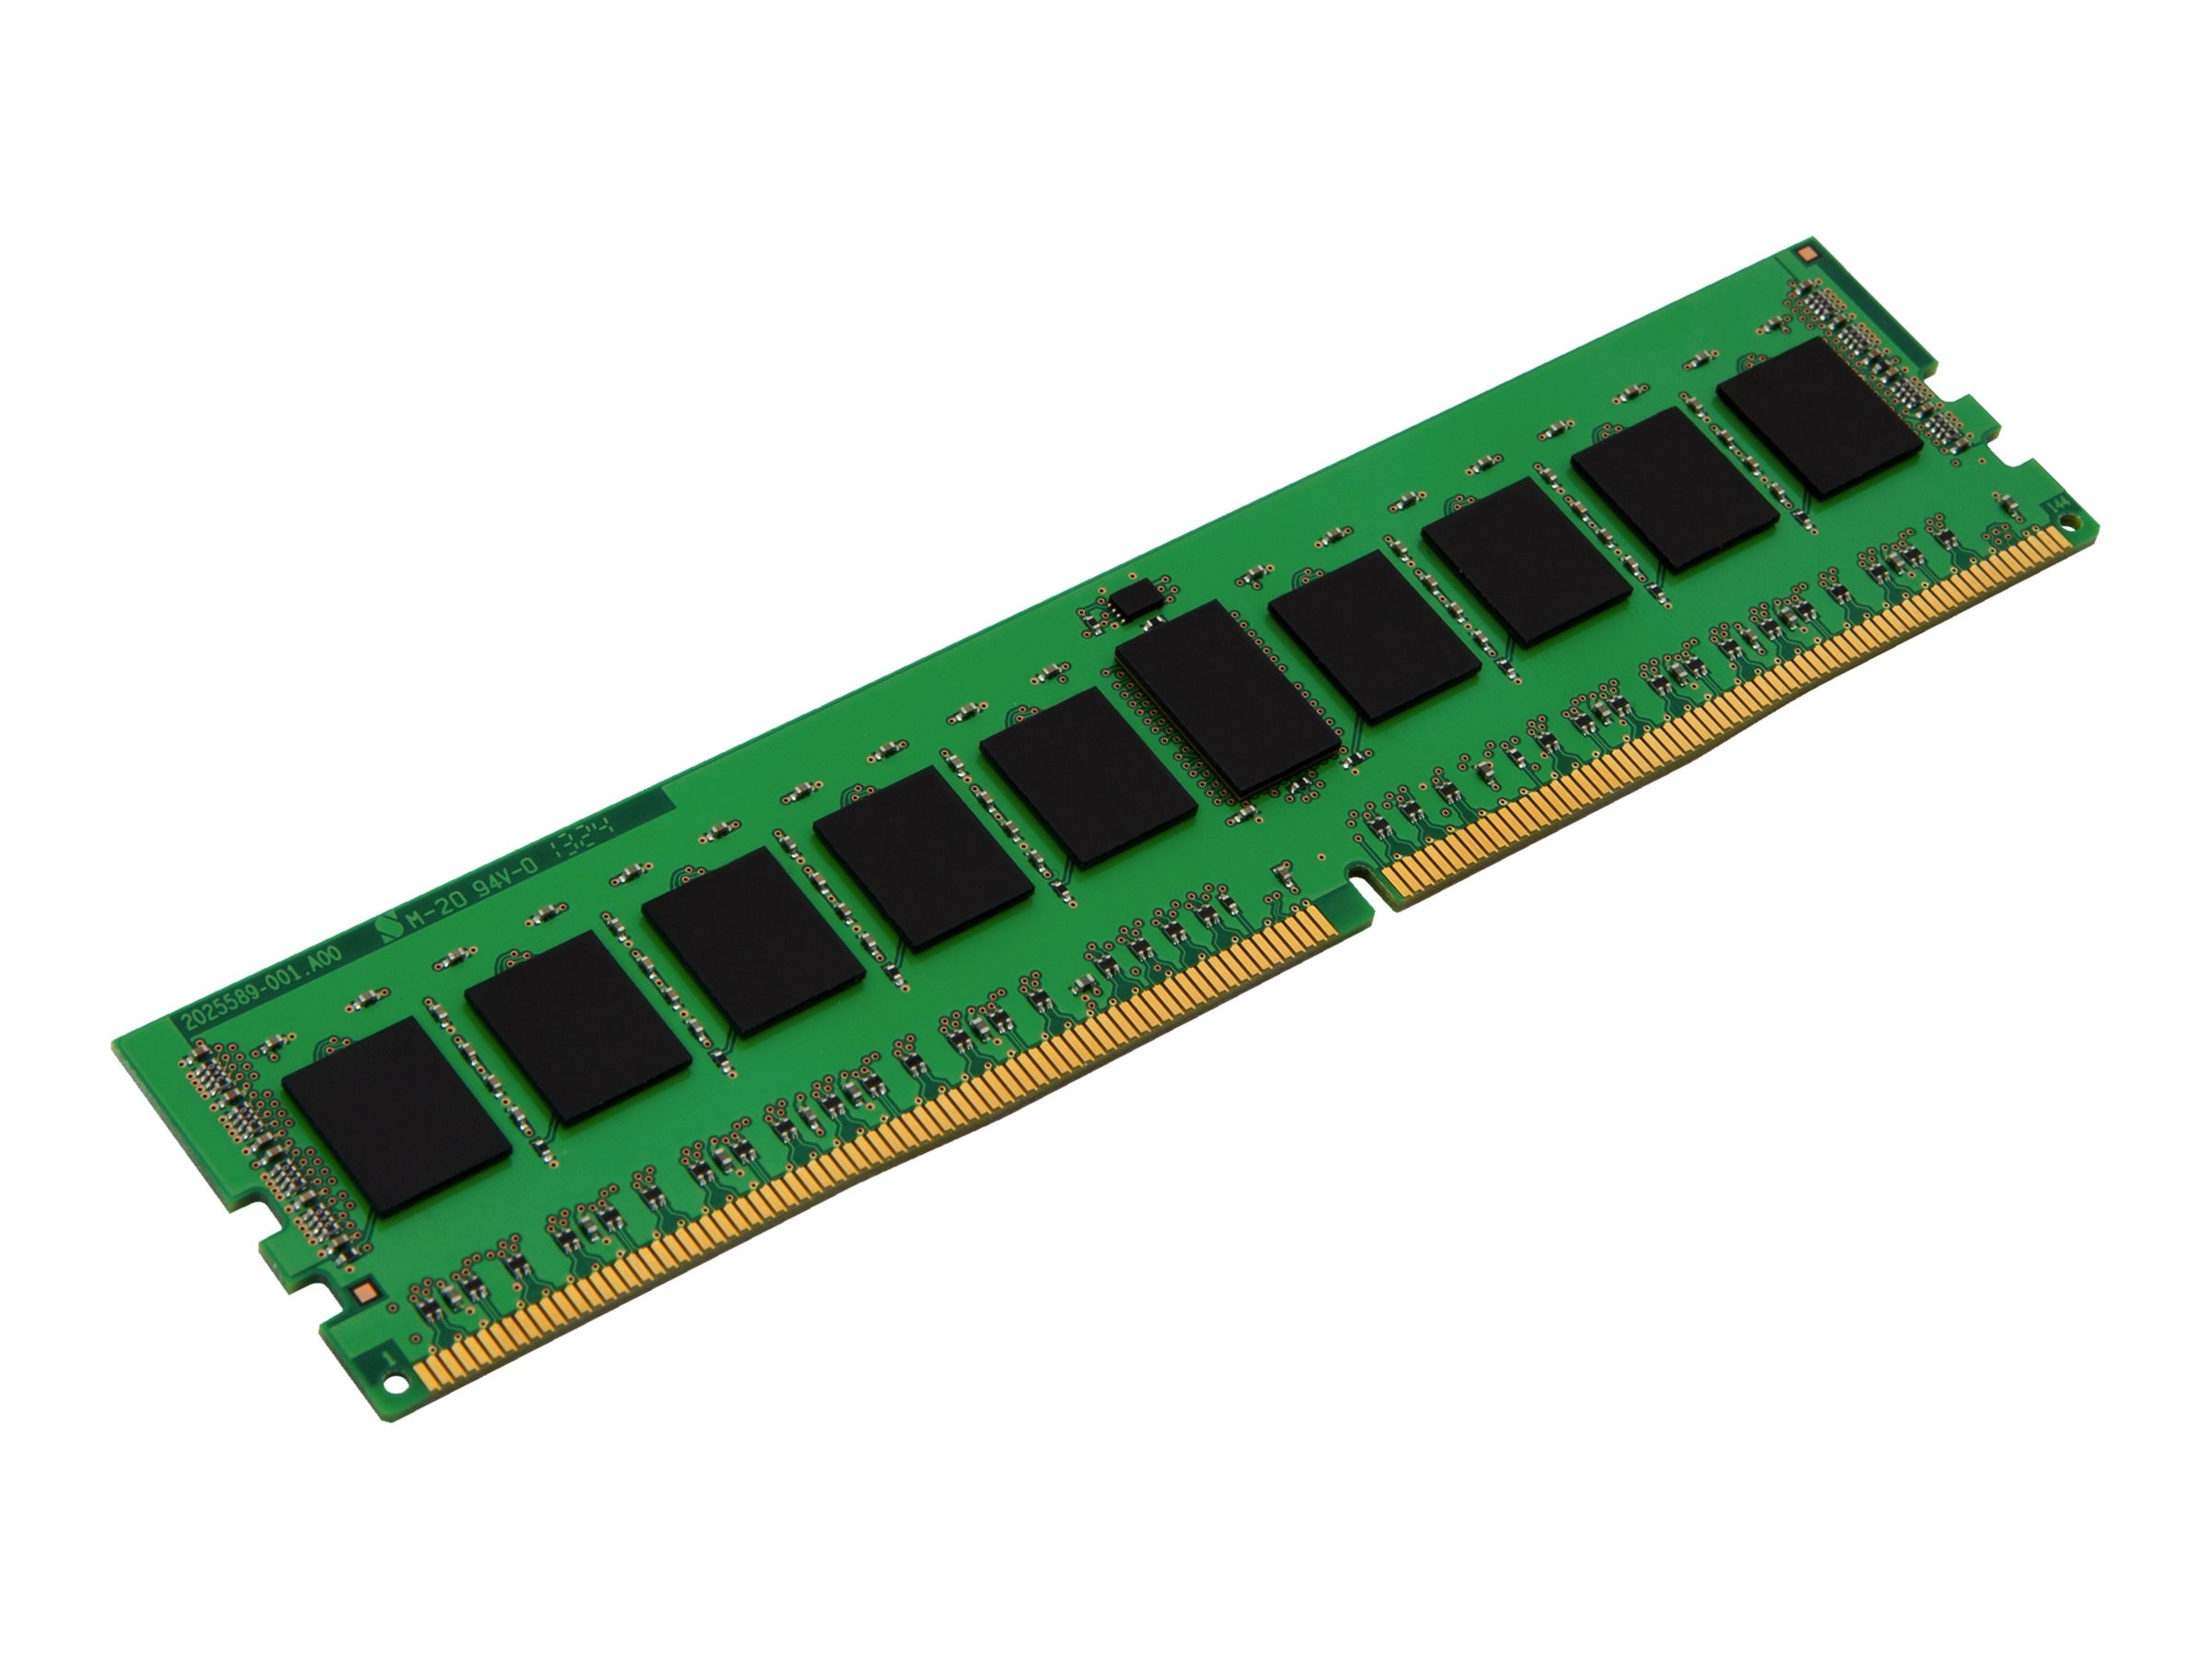 Kingston 32GB PC4-17000 288-pin DDR4 SDRAM RDIMM Kit for Select Models